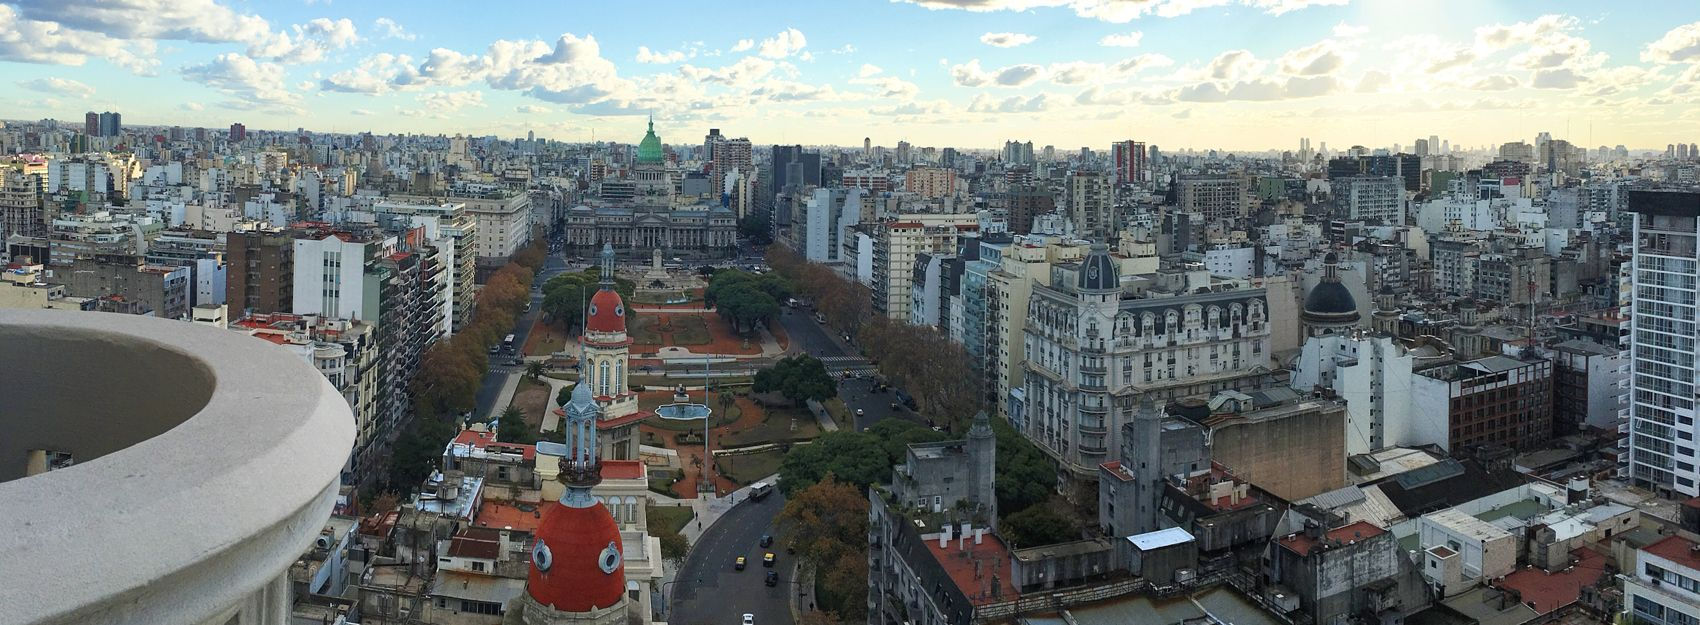 city skyline of Buenos Aires from above